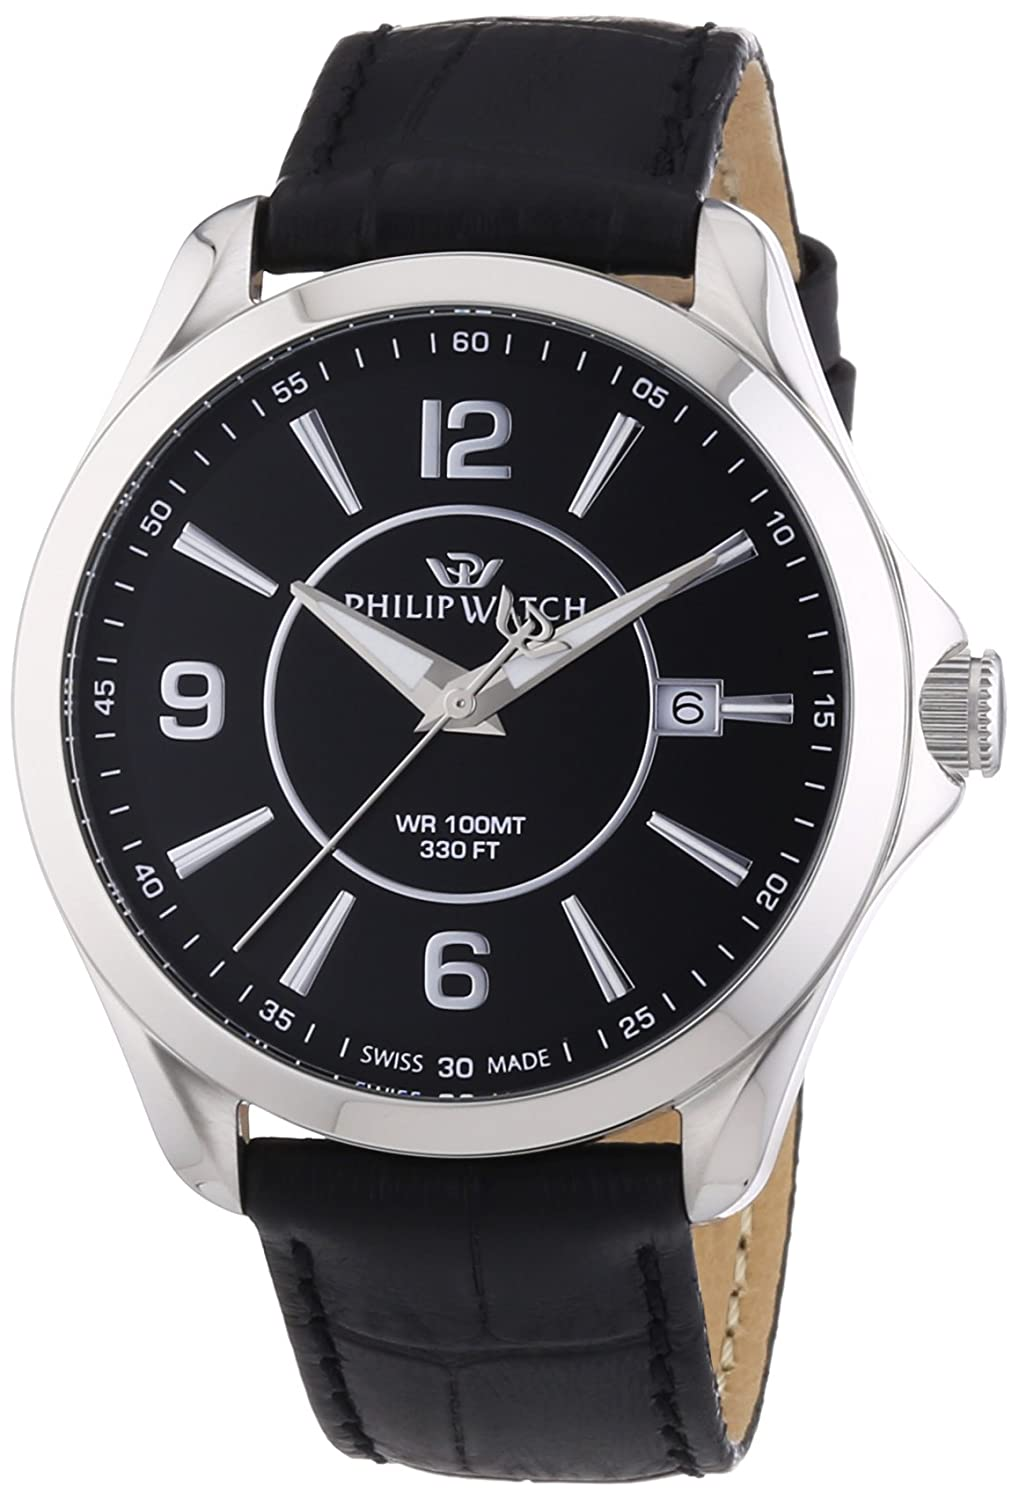 Philip Watch Herren-Armbanduhr BLAZE Analog Quarz Leder R8251165001